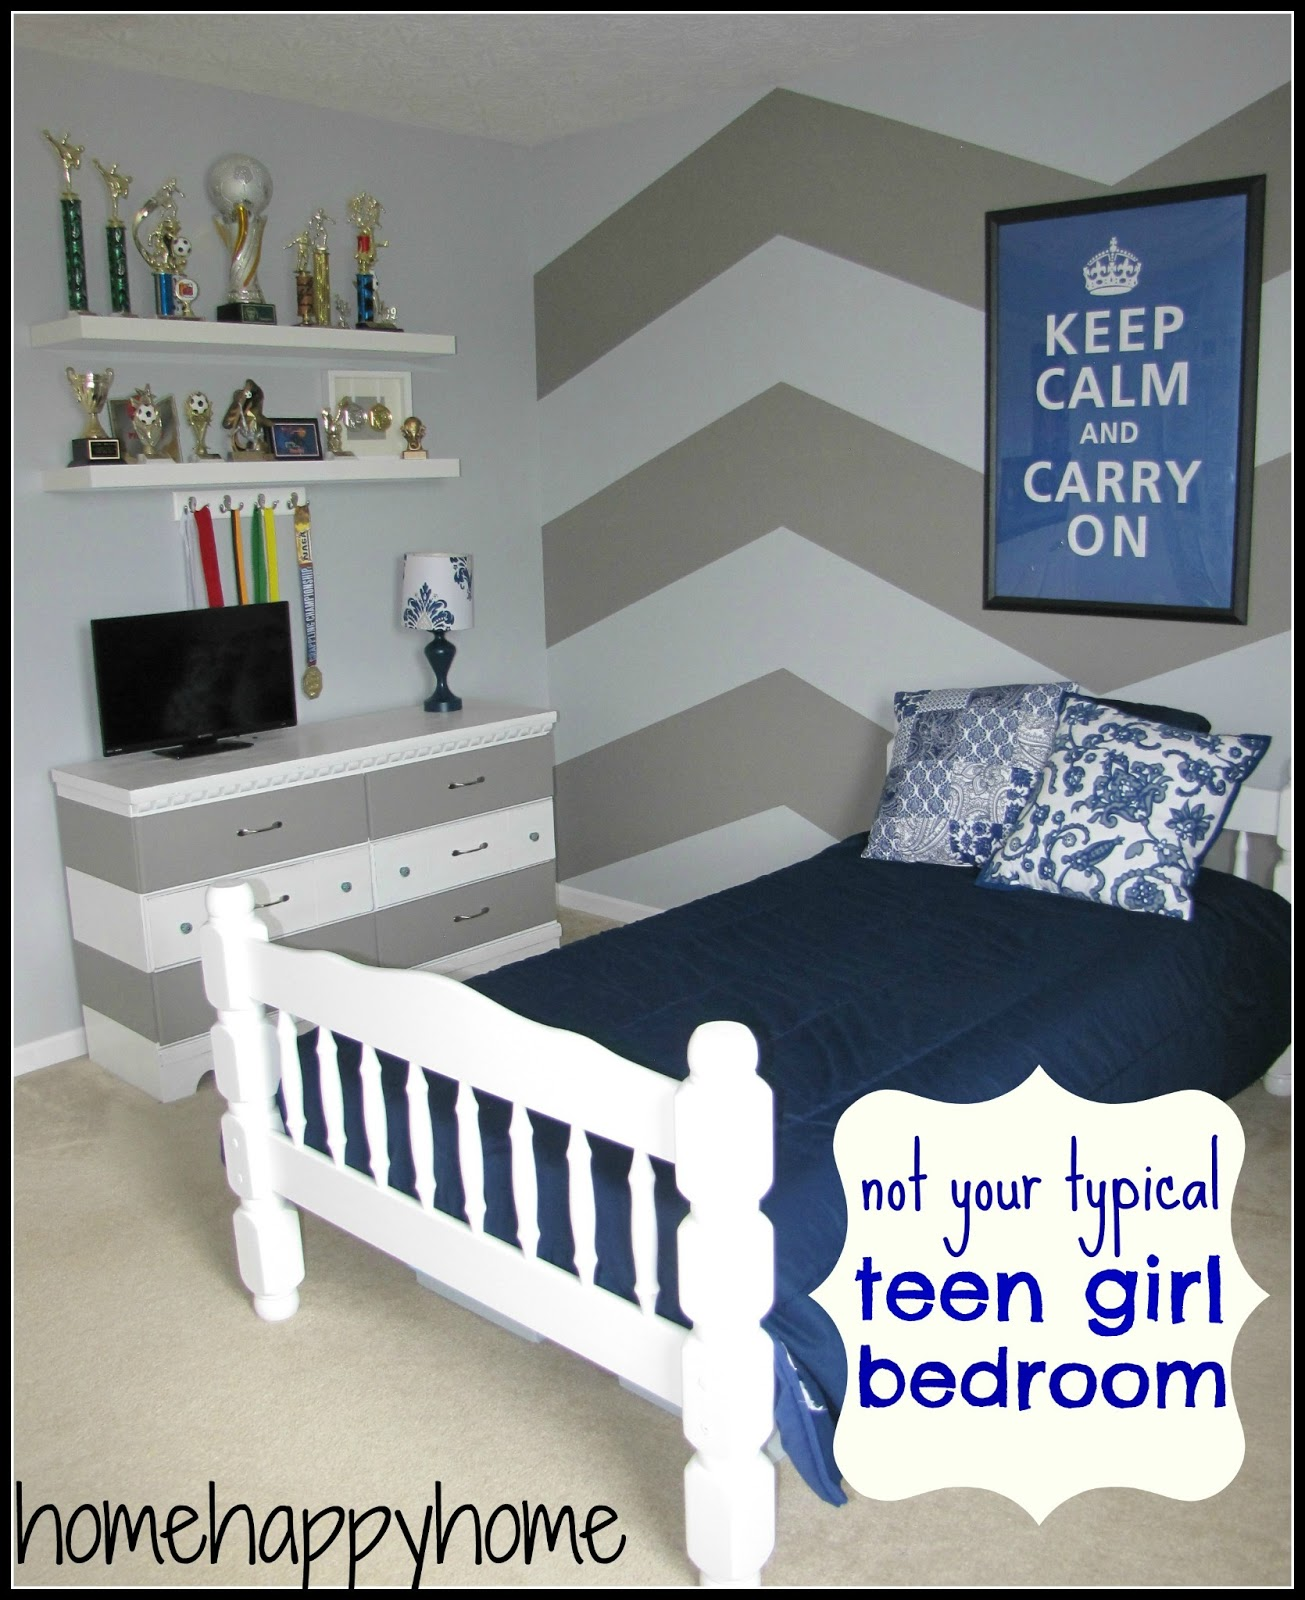 BookGirlCreations: Not your typical teen girl bedroom